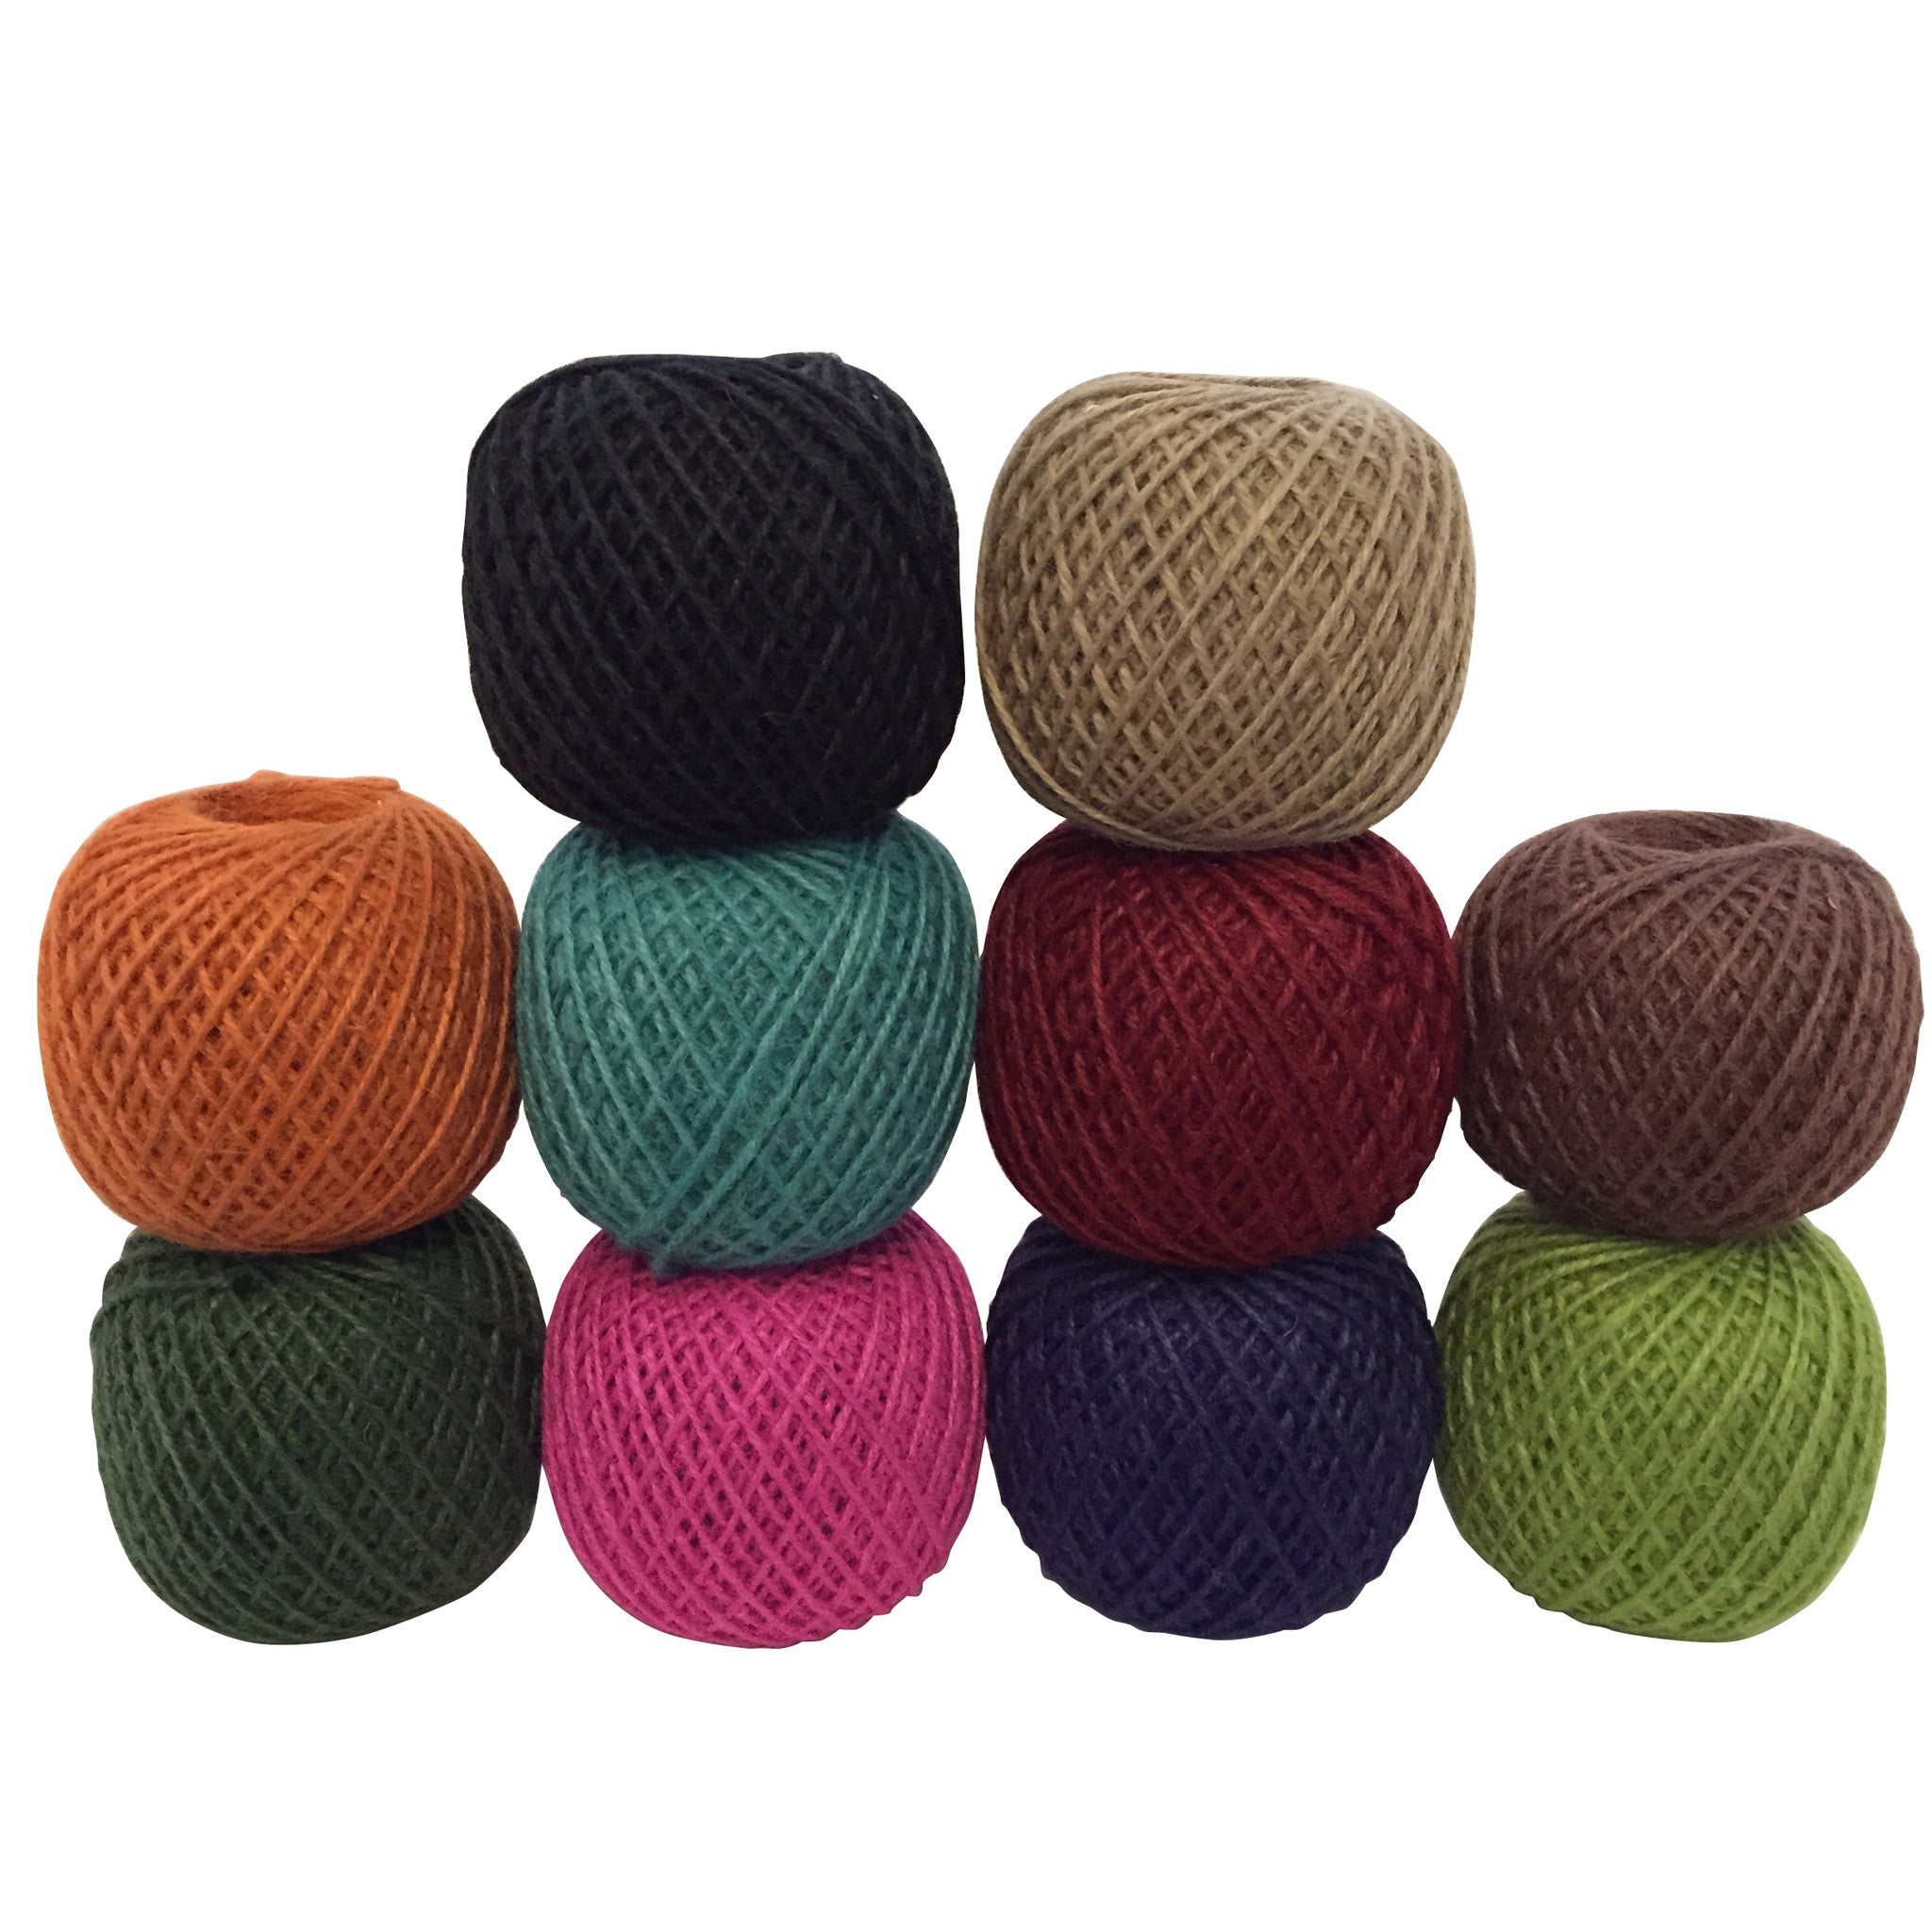 Twine balls 250g - The Potting Shed Garden Tools